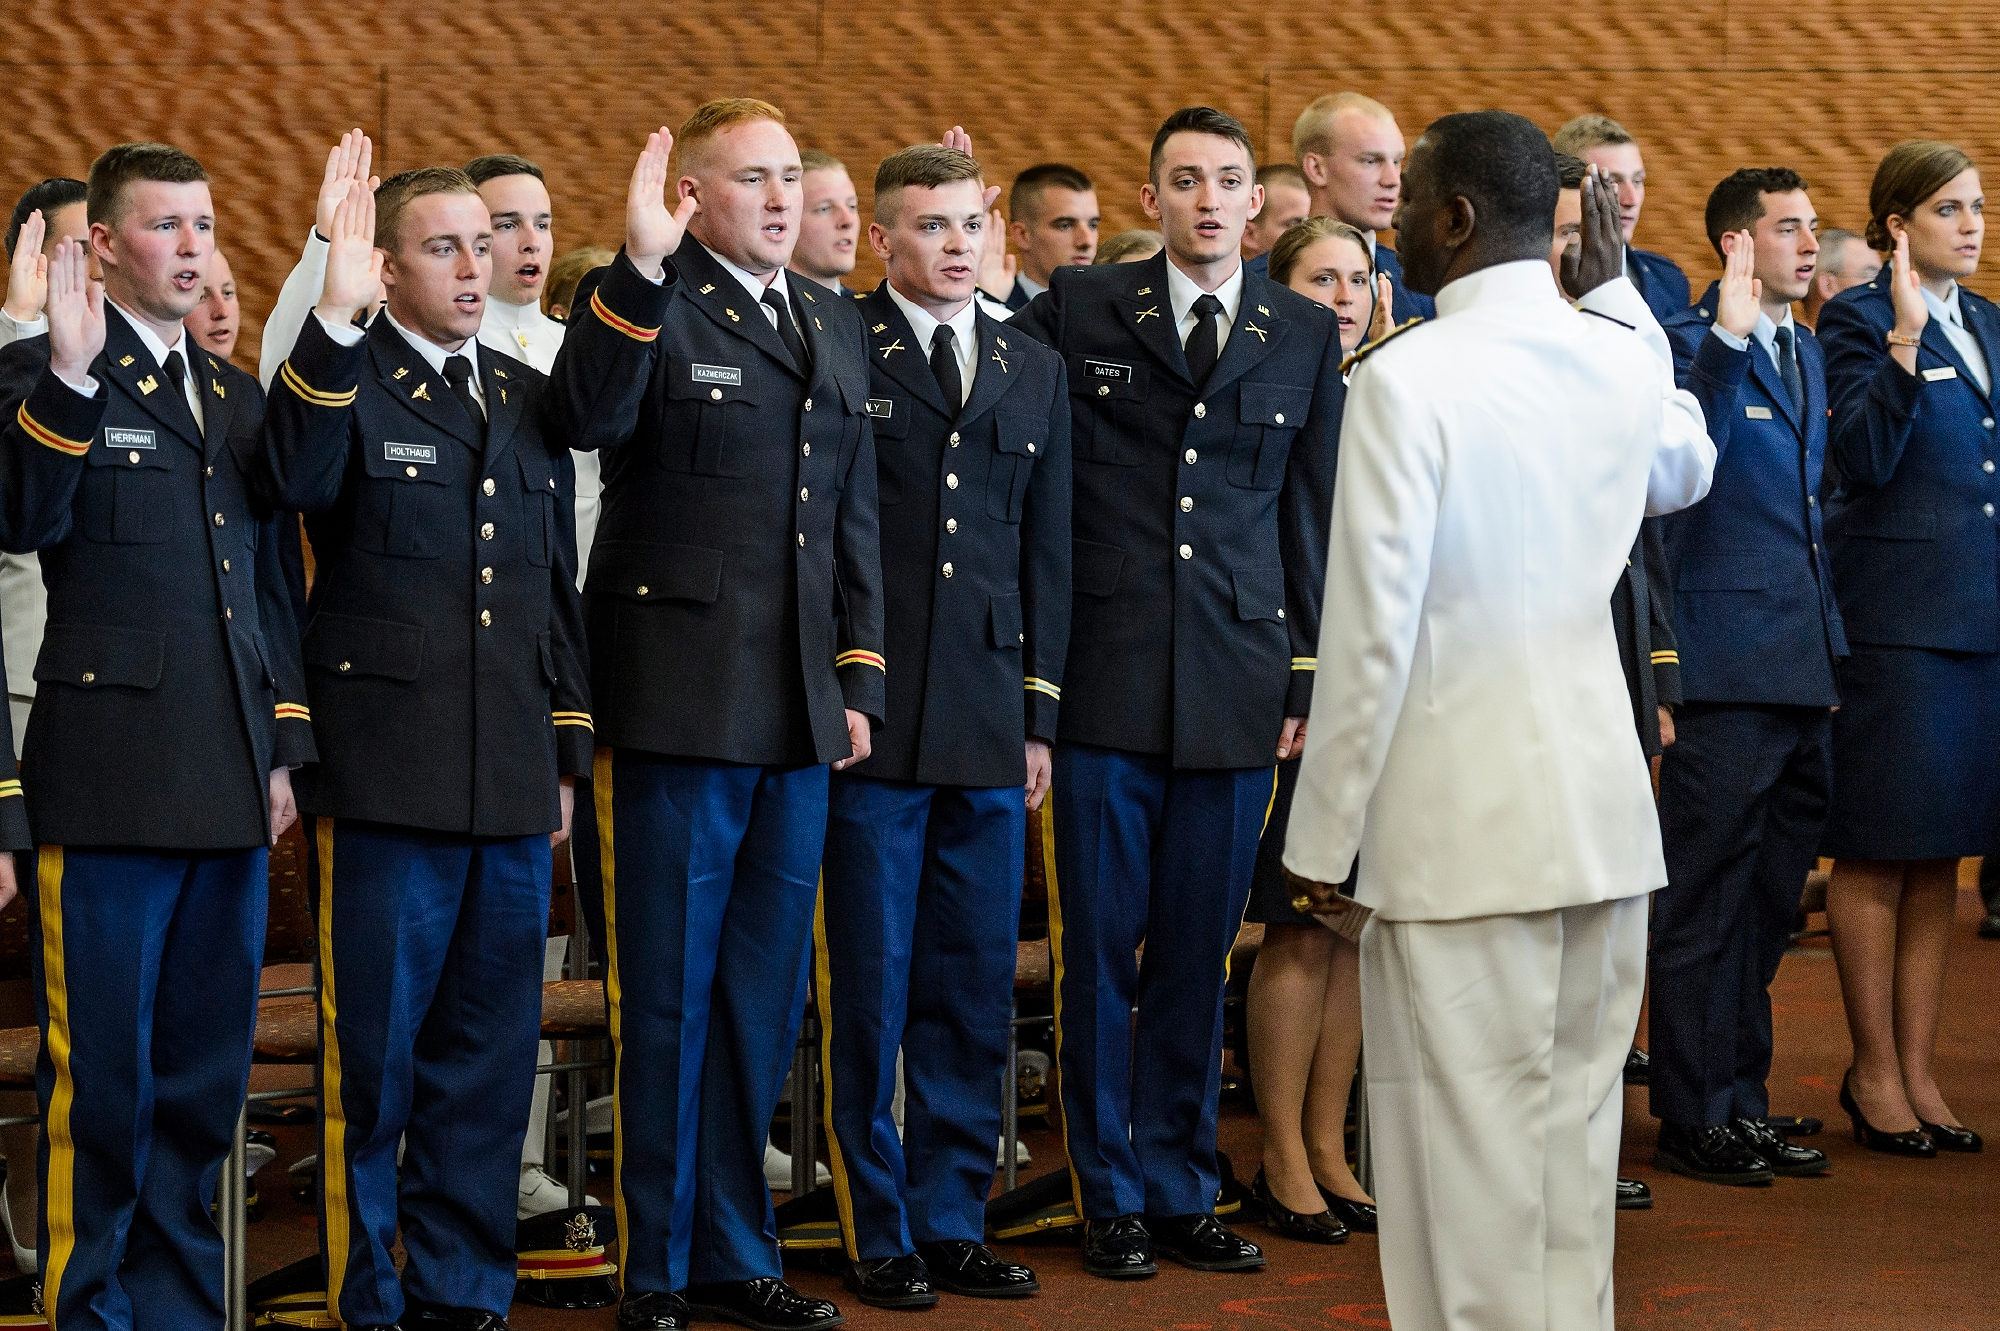 Members of UW–Madison's Army, Navy and Air Force ROTC units take the oath of office, led by Rear Admiral Stephen C. Evans, at right, during an officer commissioning ceremony at Gordon Dining and Event Center on May 13.